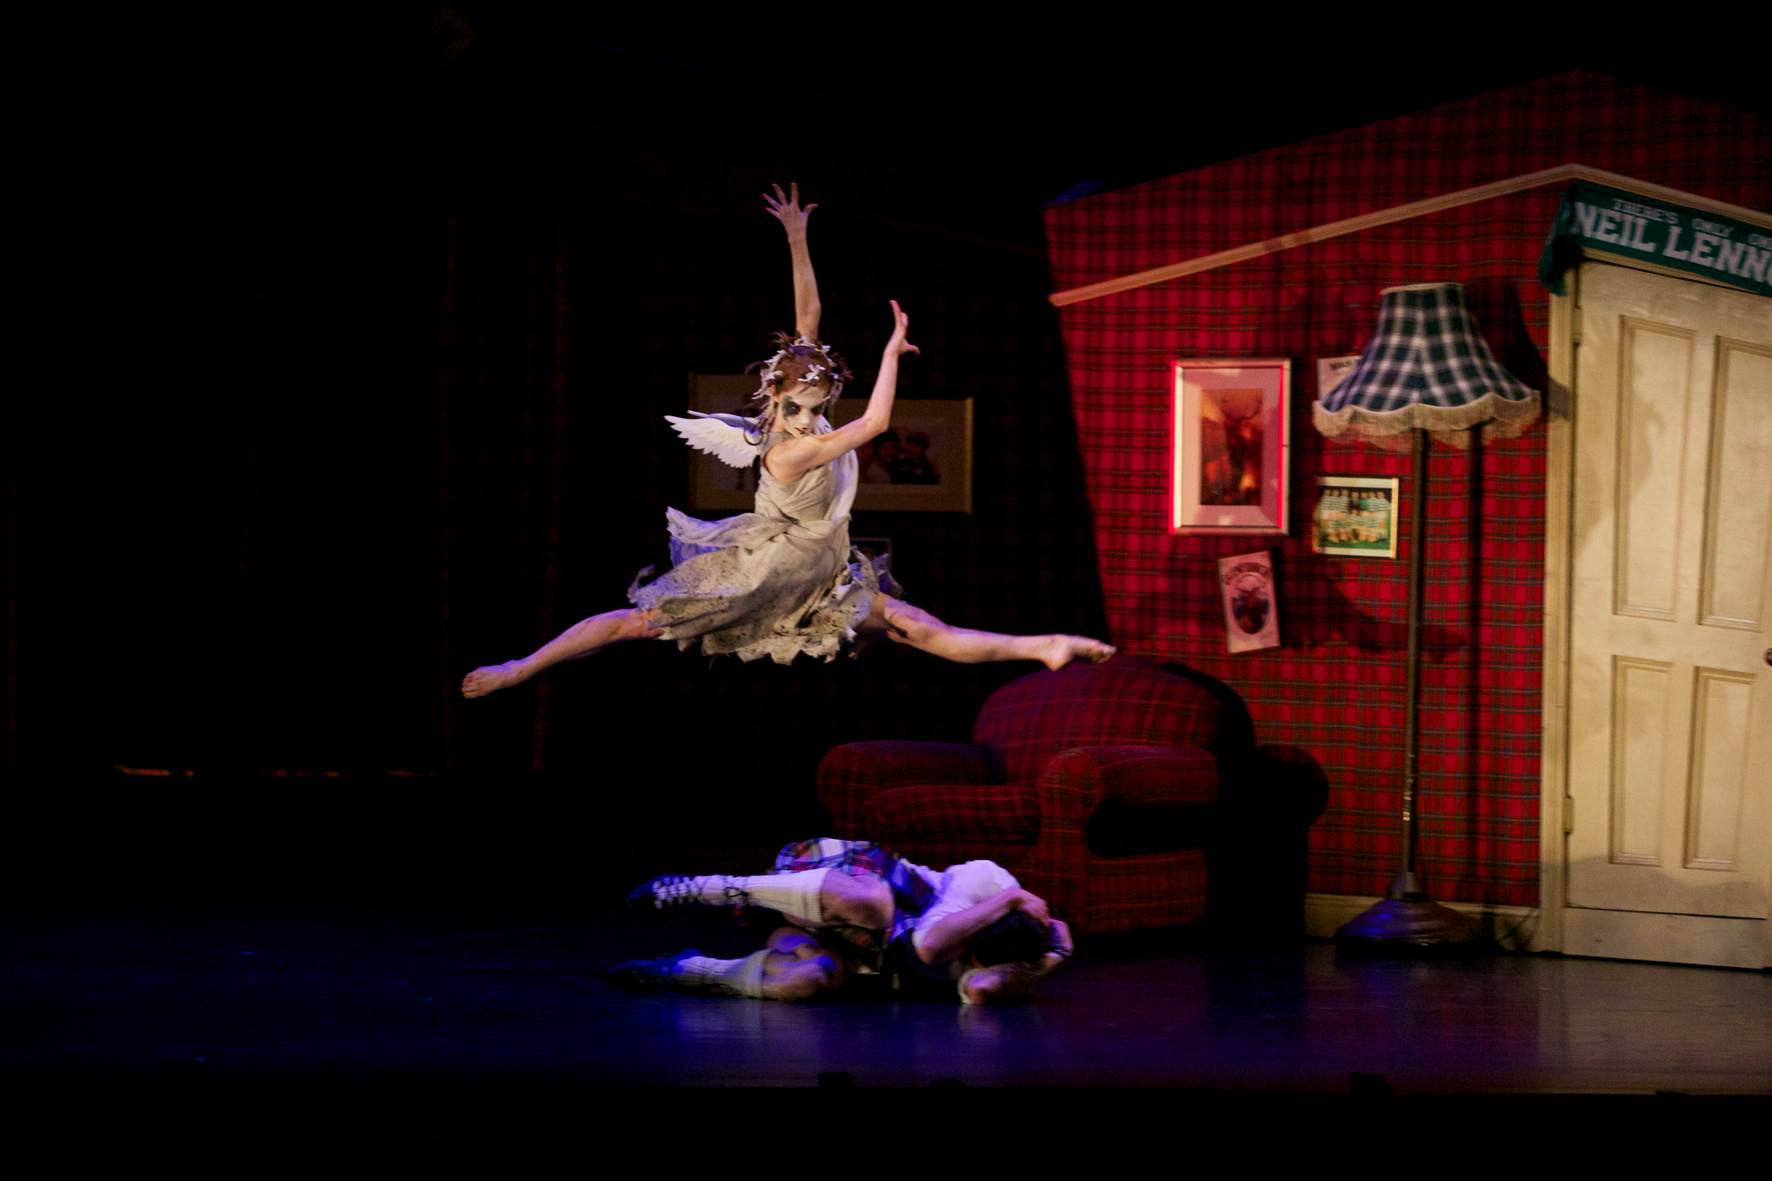 Bethany Kingsley – Garner in Scottish Ballet's production of Matthew Bourne's Highland Fling. Photograph by Andy Ross.